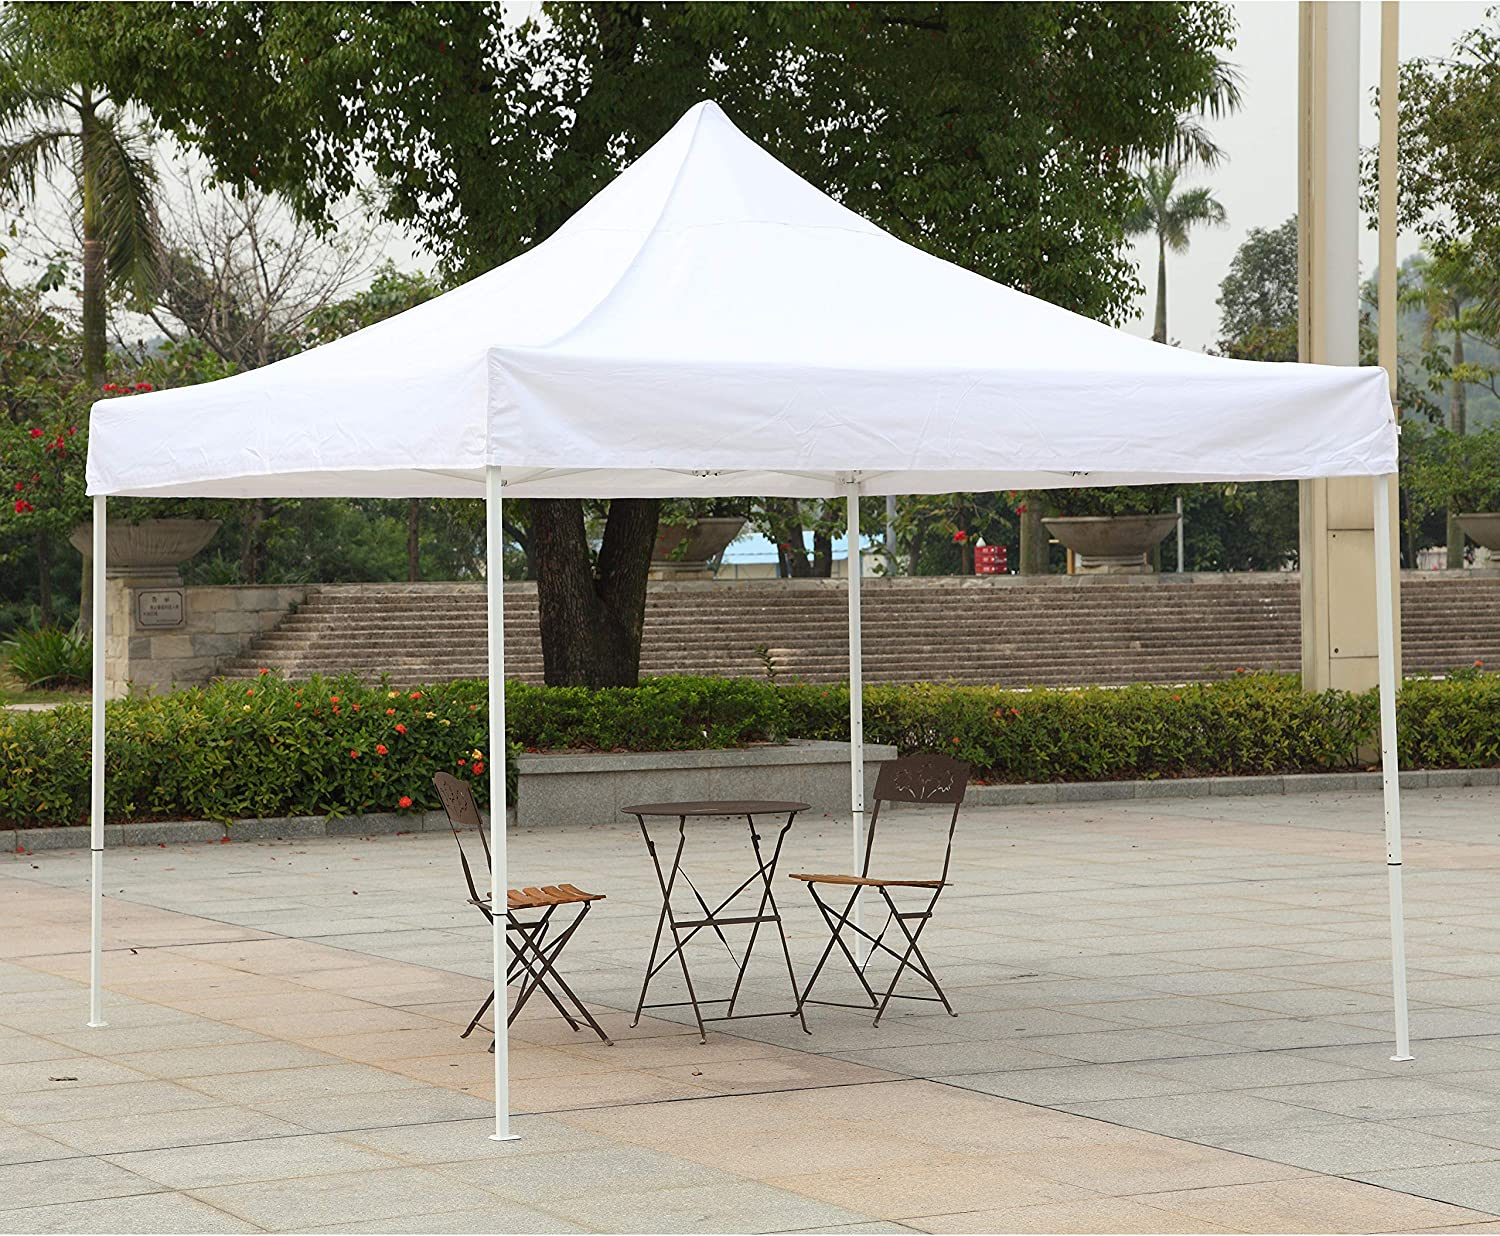 American Phoenix Canopy Tent 10×10 Easy Pop Up Instant Portable Event Commercial Fair Shelter Wedding Party Tent White, 10×10